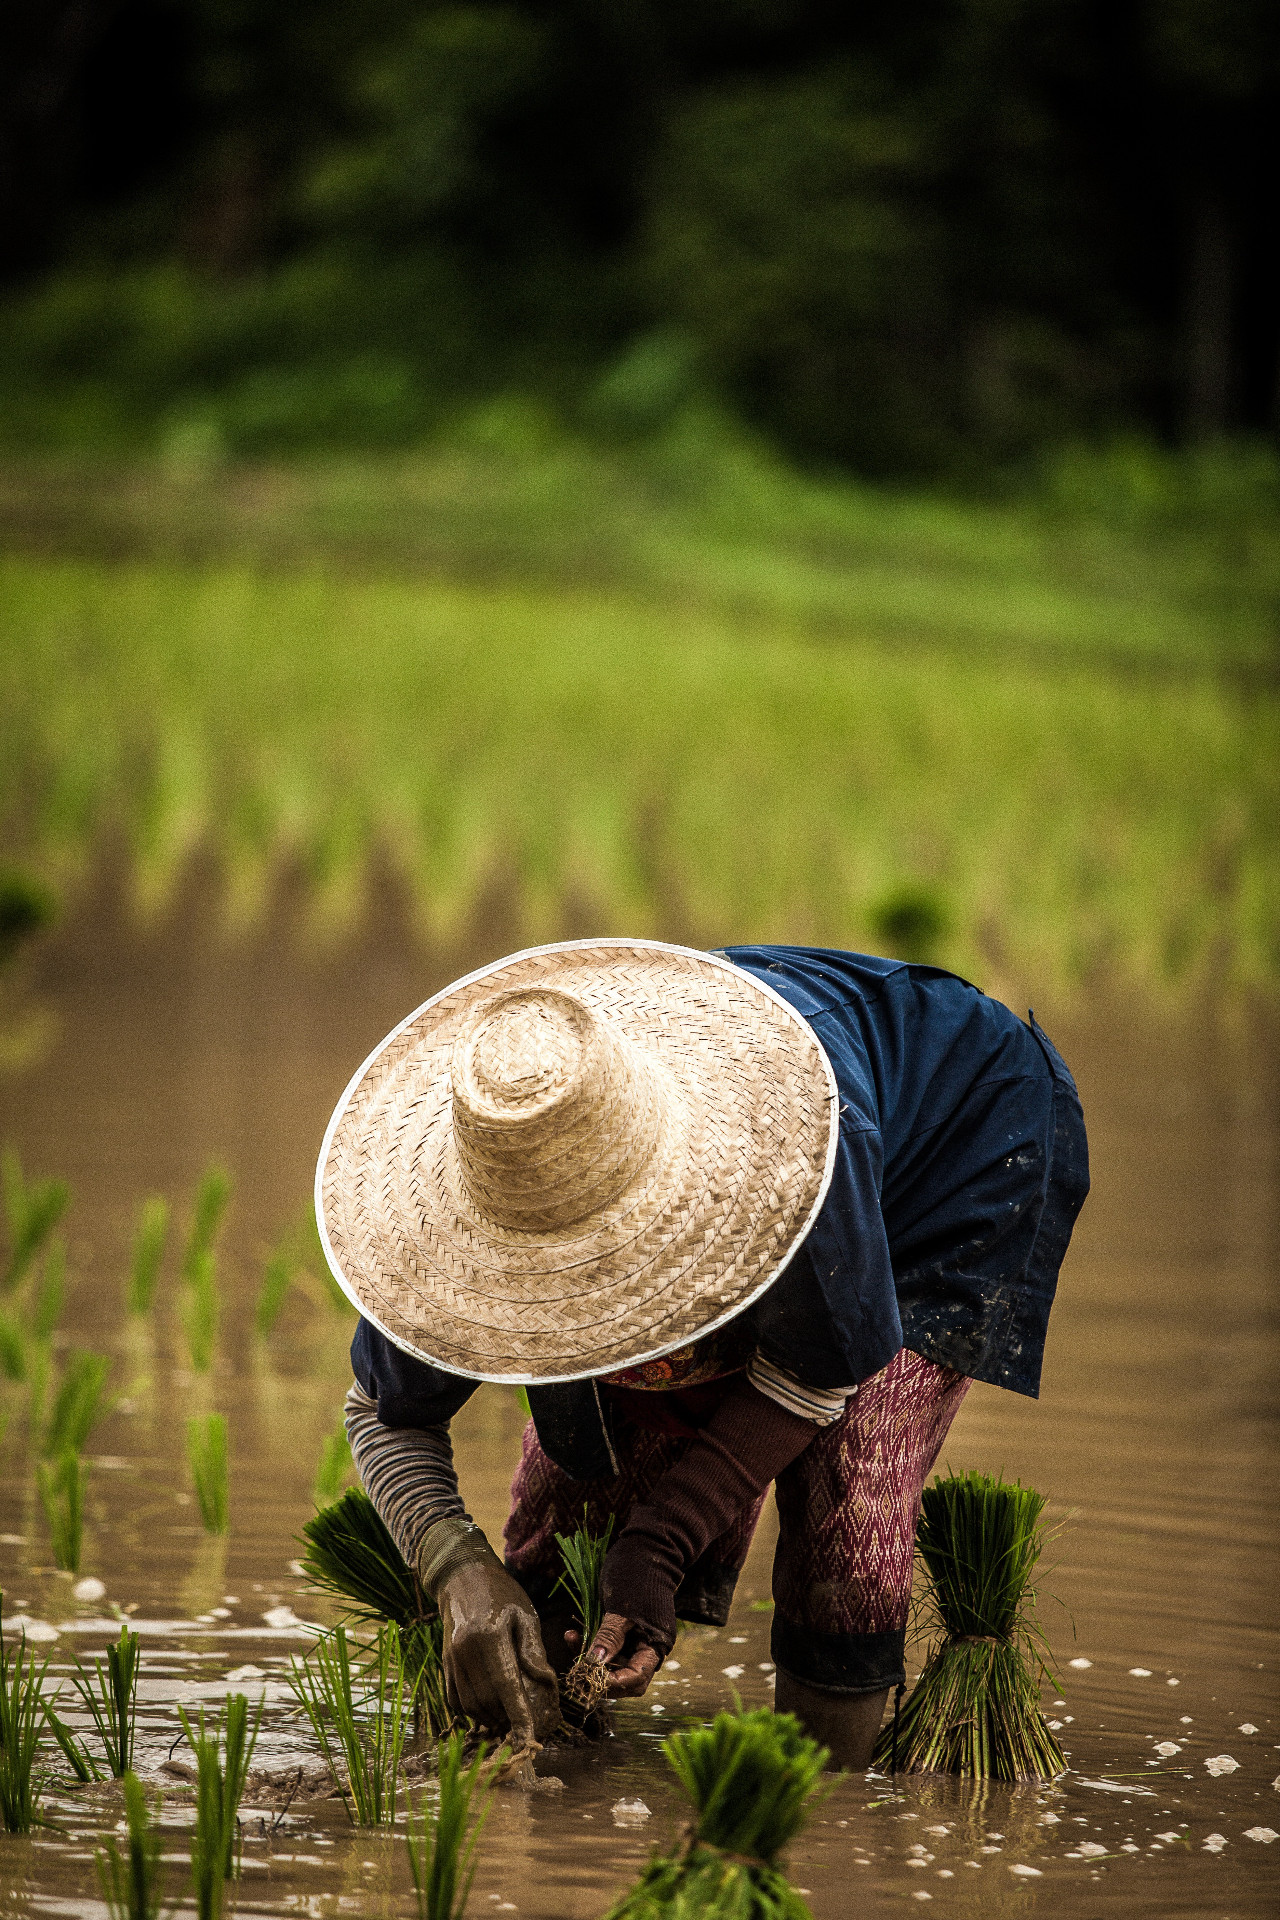 Rice Field Work in Chiang Mai, Thailand by Eduardo Prim